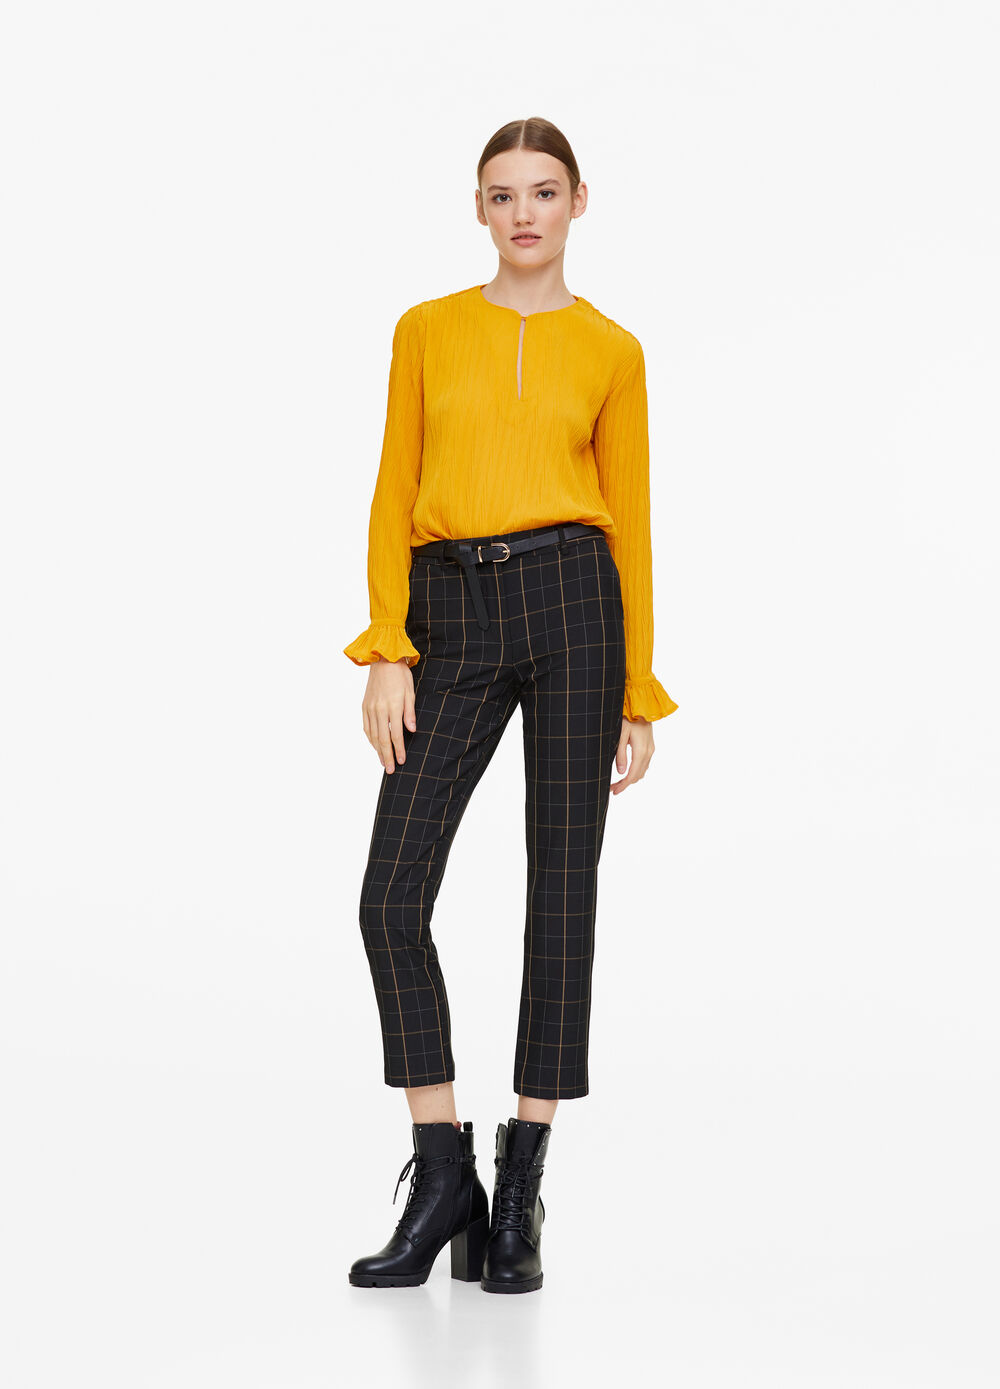 Solid colour blouse with textured fabric